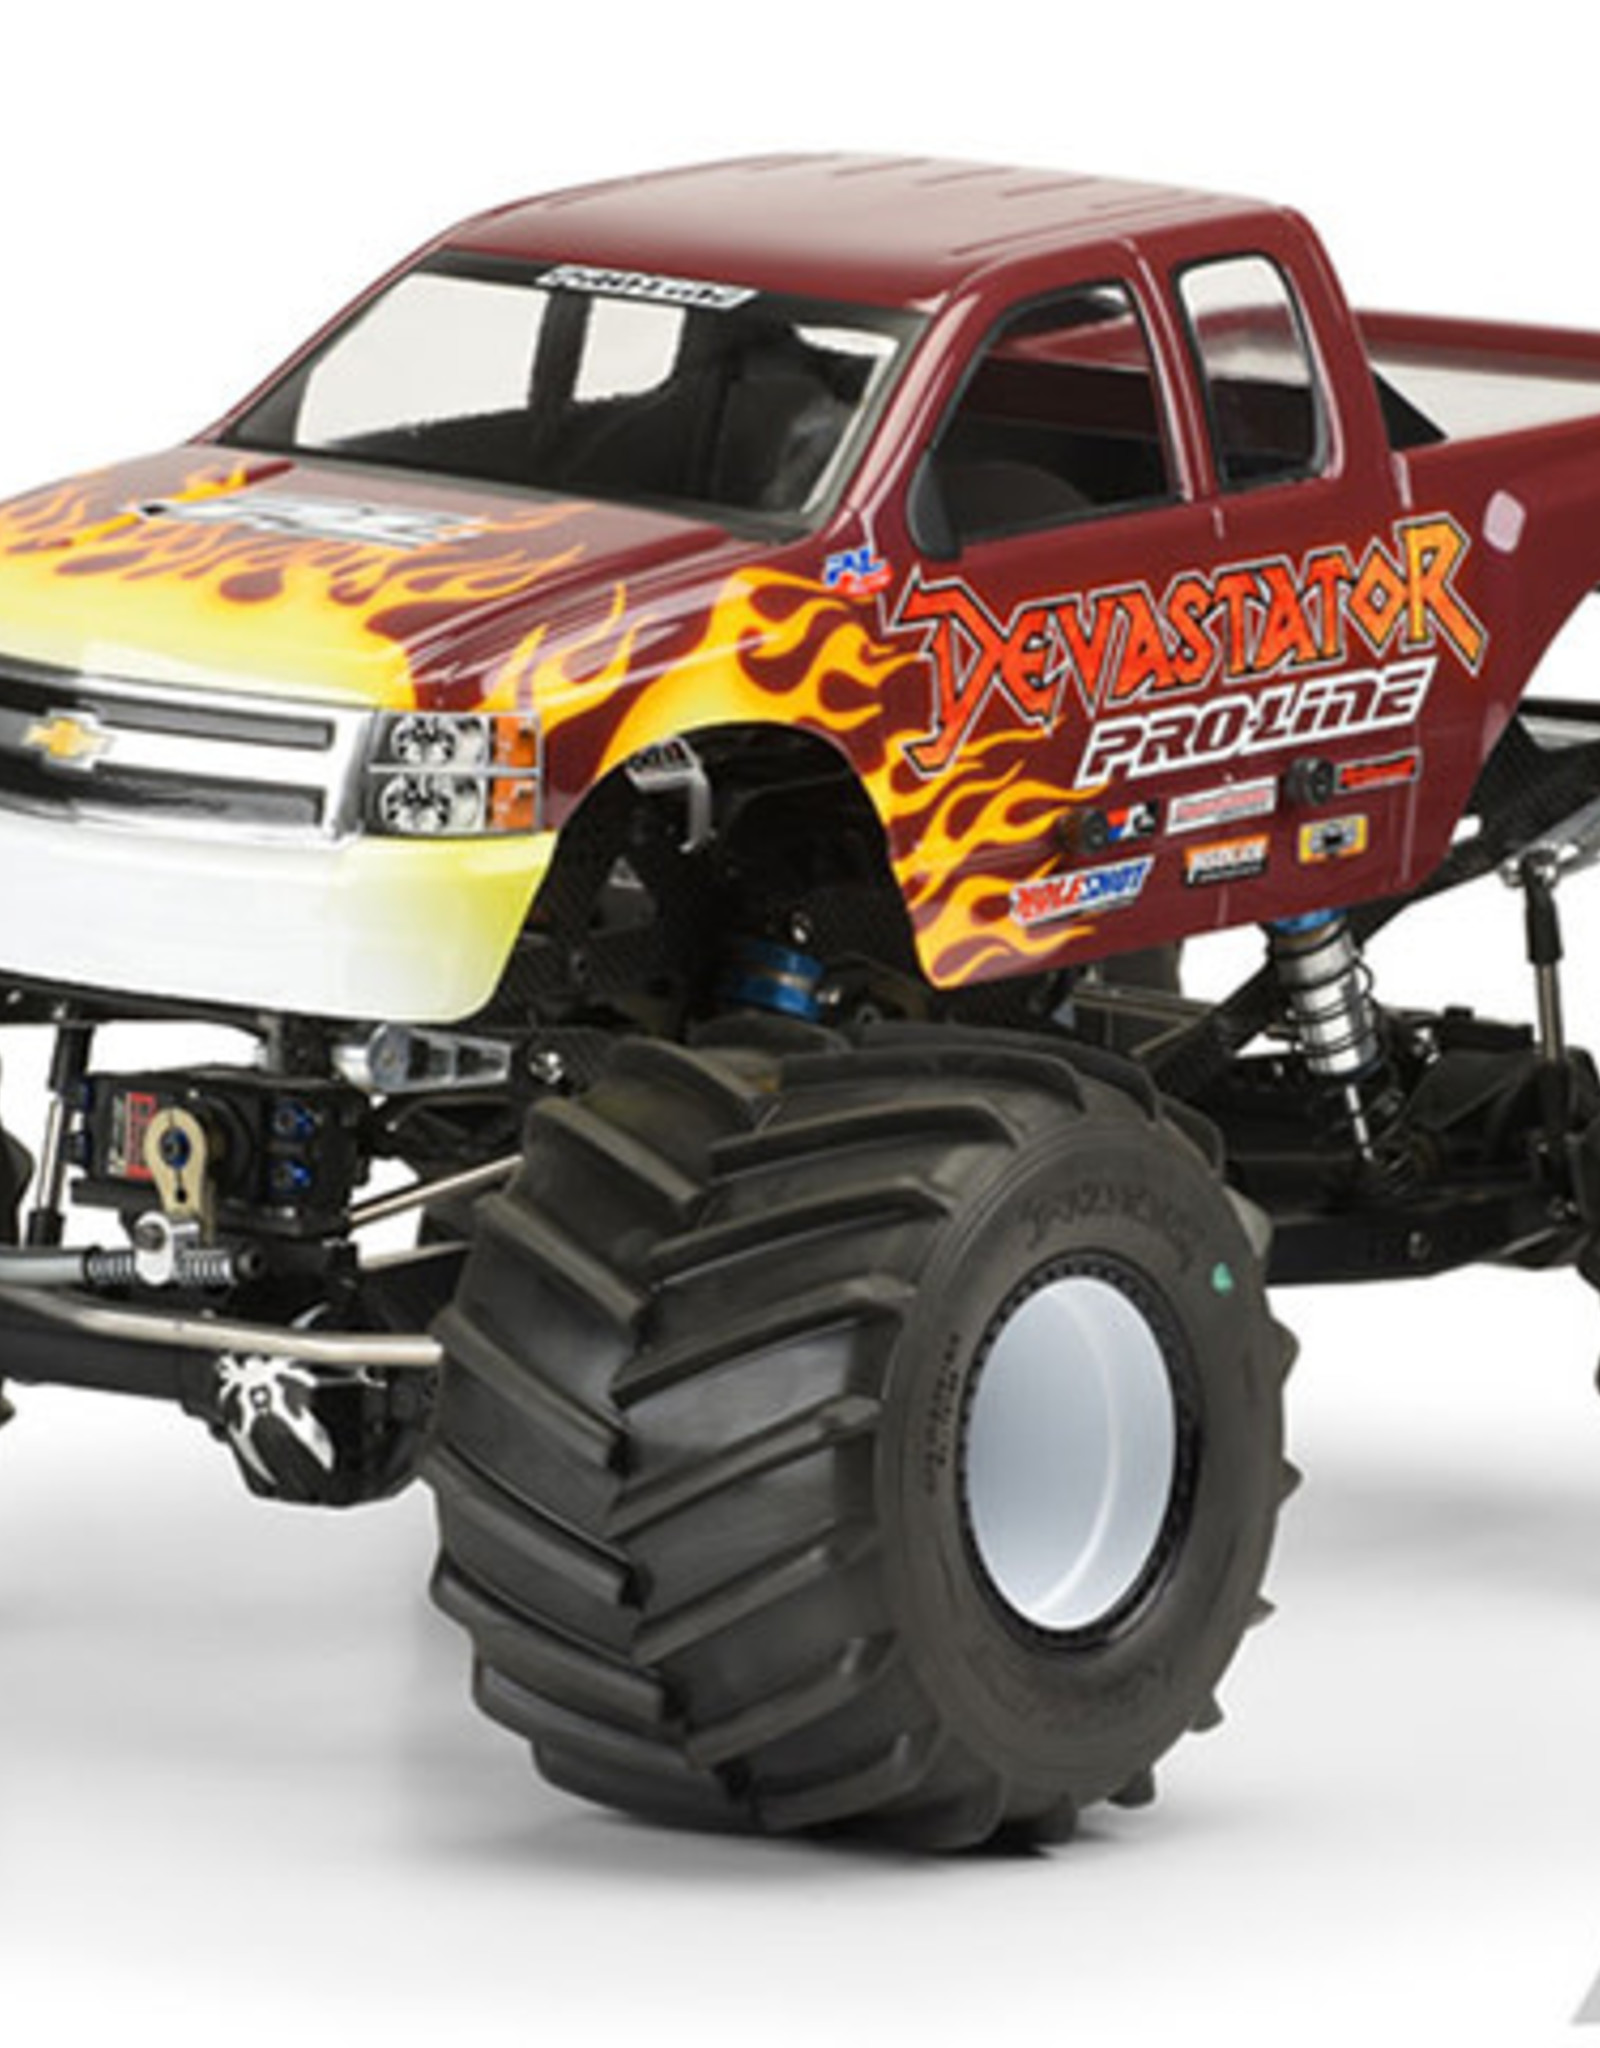 Pro-Line Proline Racing PRO3229-00 2007 Chevy Silverado Clear Body for Solid Axle Monster